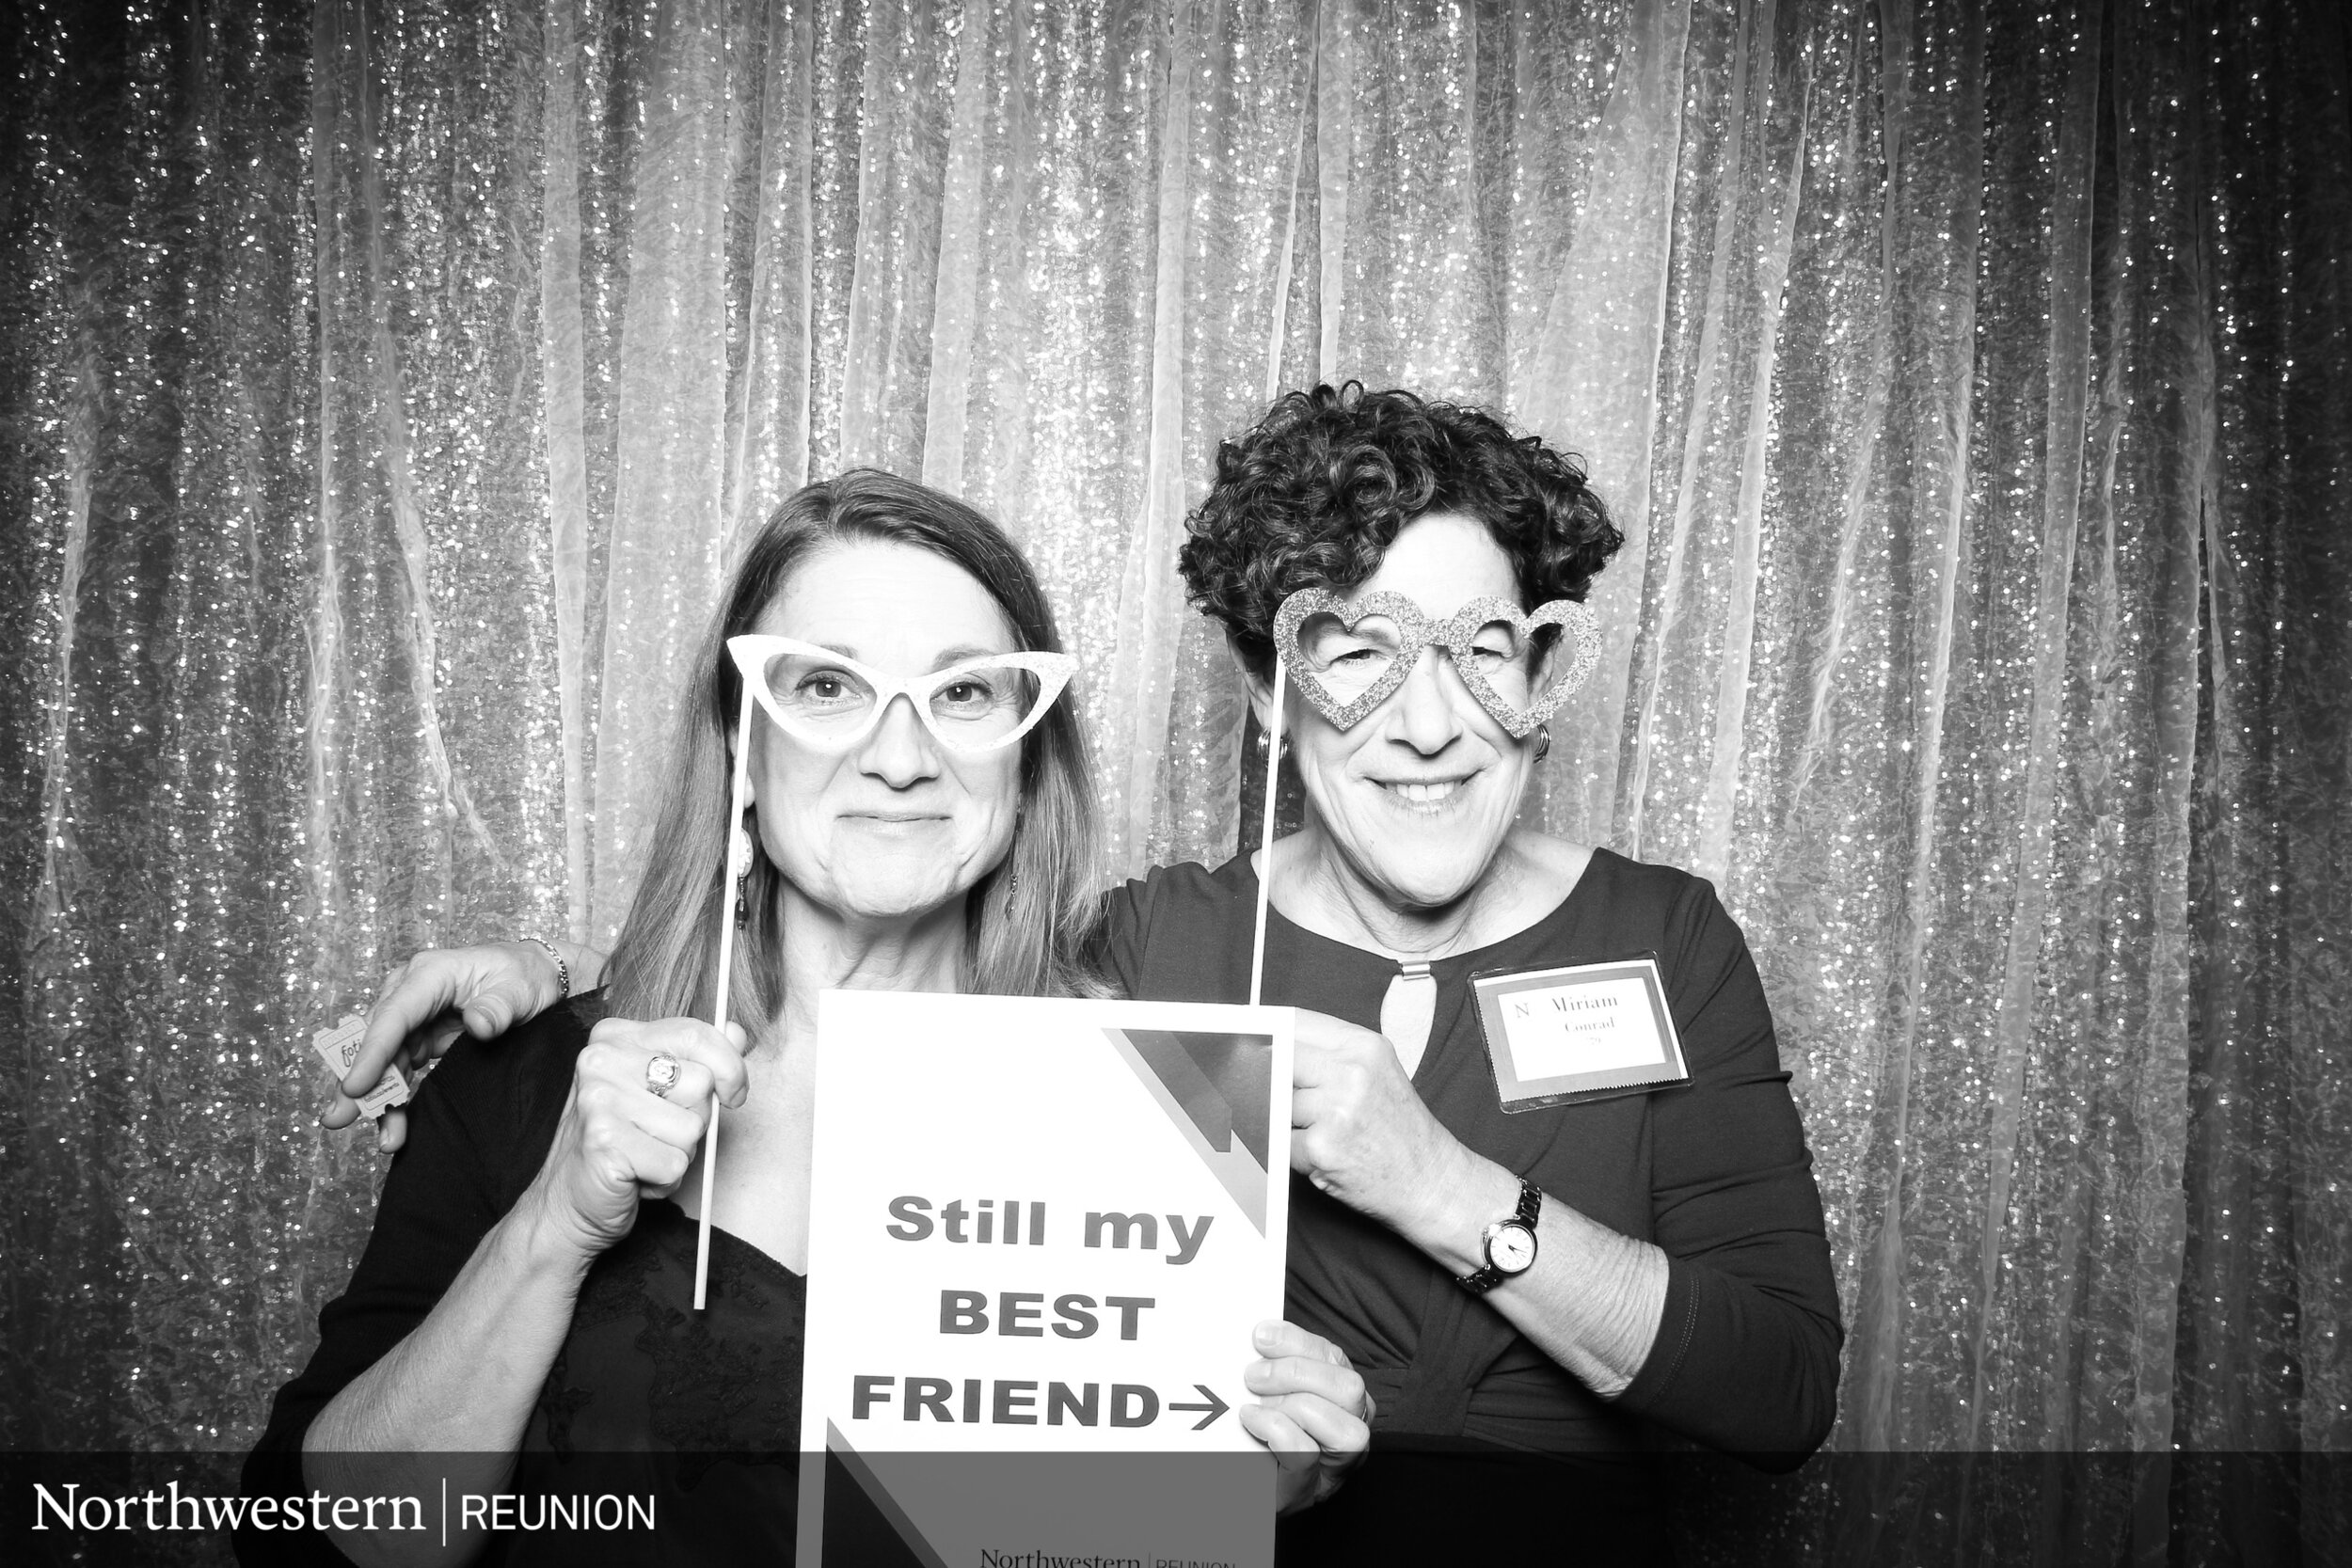 Class_Reunion_Photo_Booth_Chicago_06.jpg